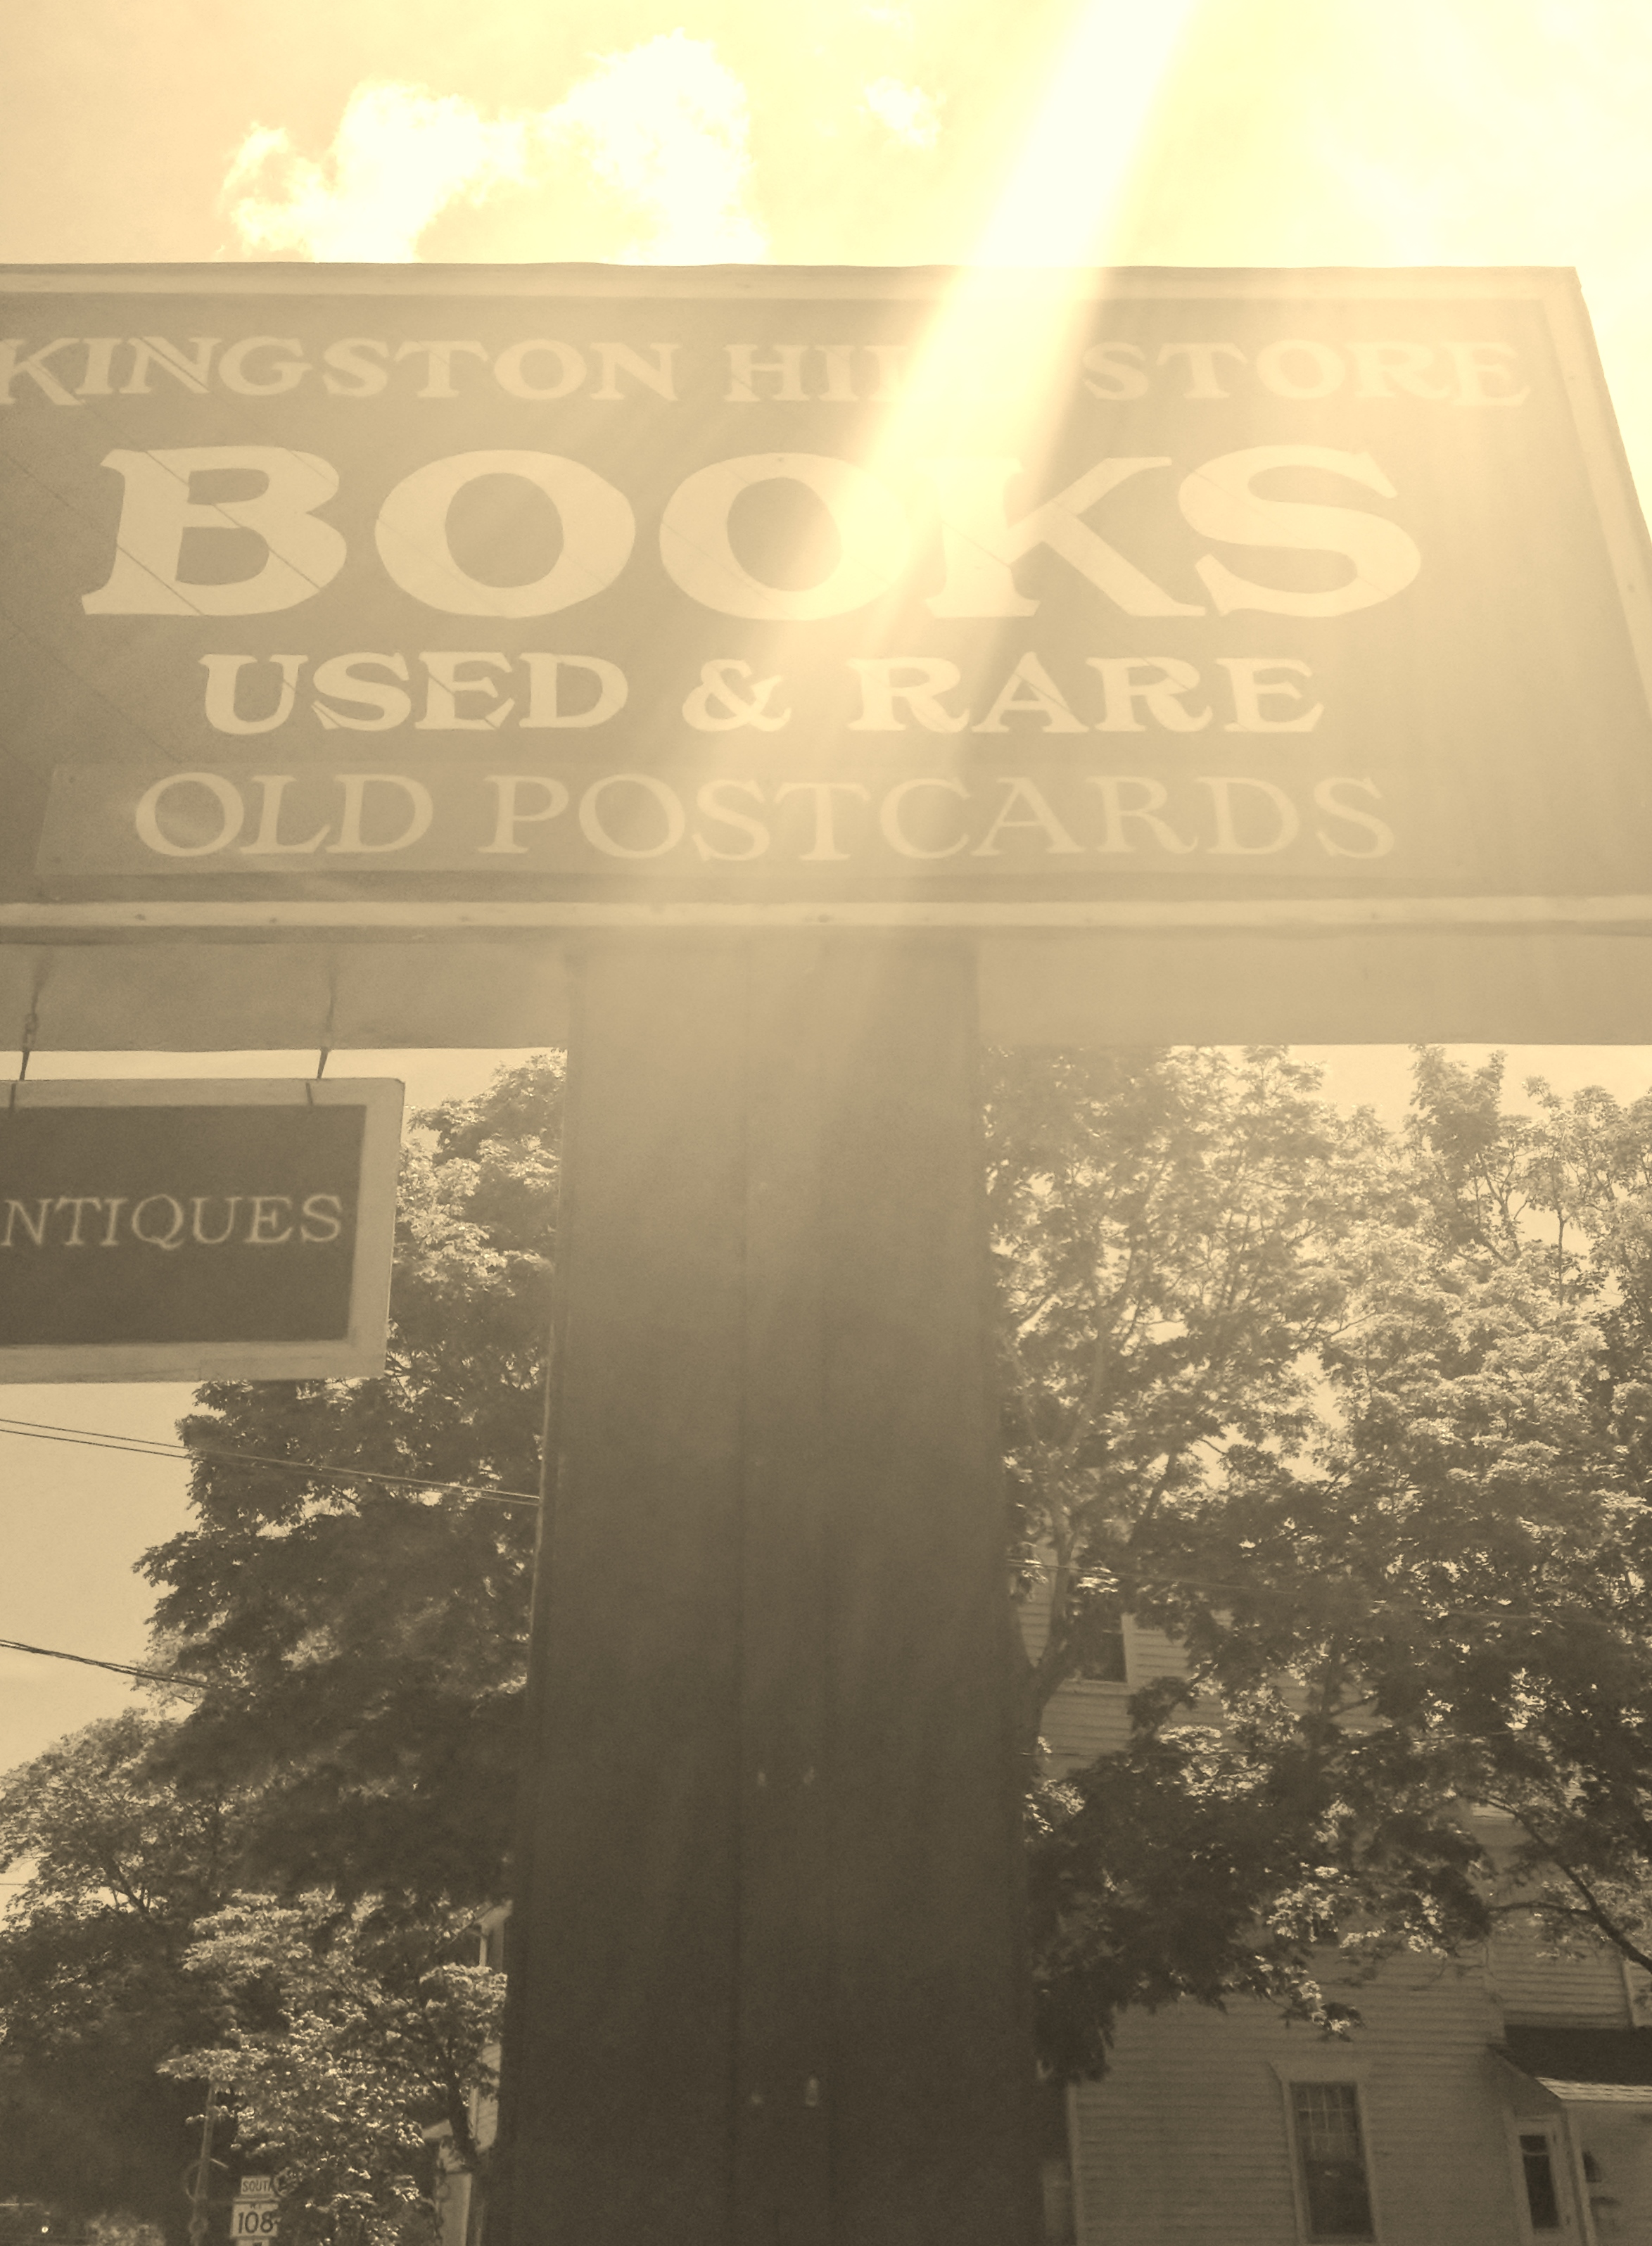 Kingston-Hill-Store-sign.jpg